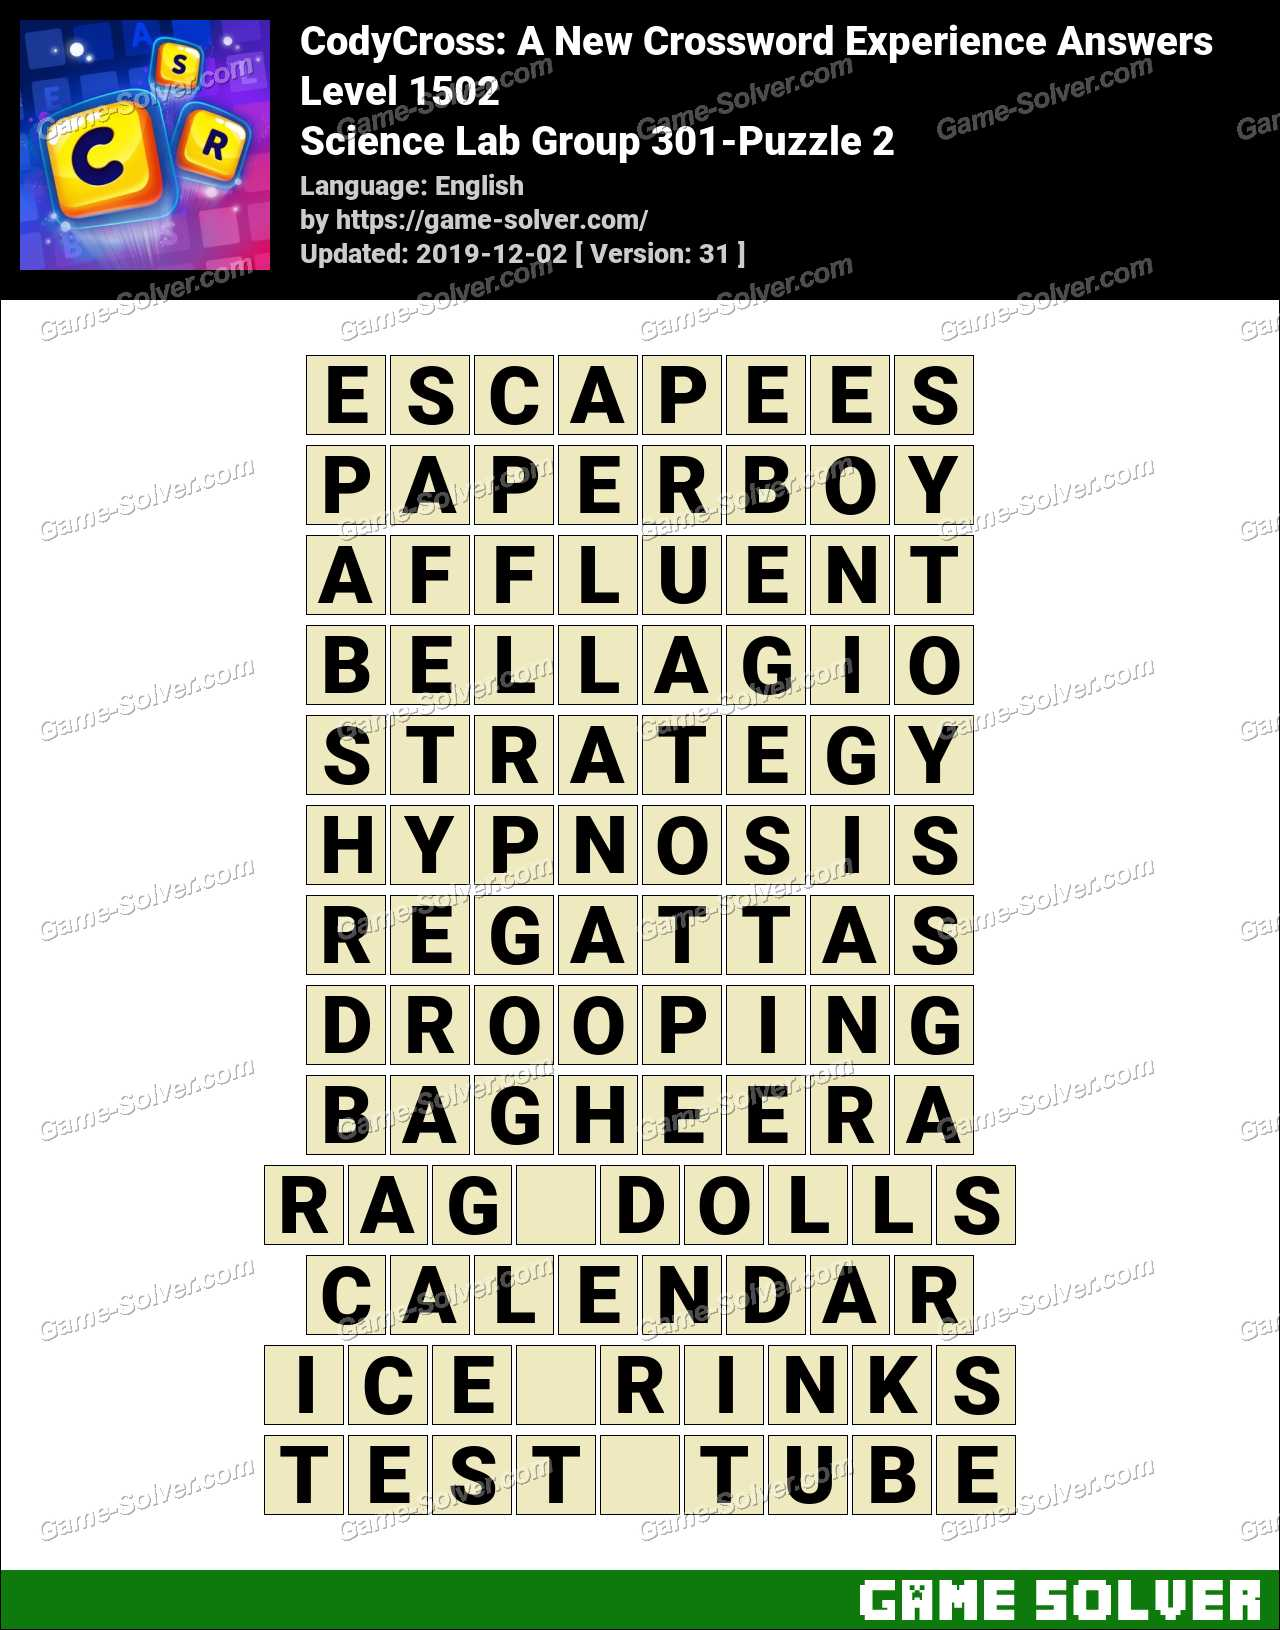 CodyCross Science Lab Group 301-Puzzle 2 Answers